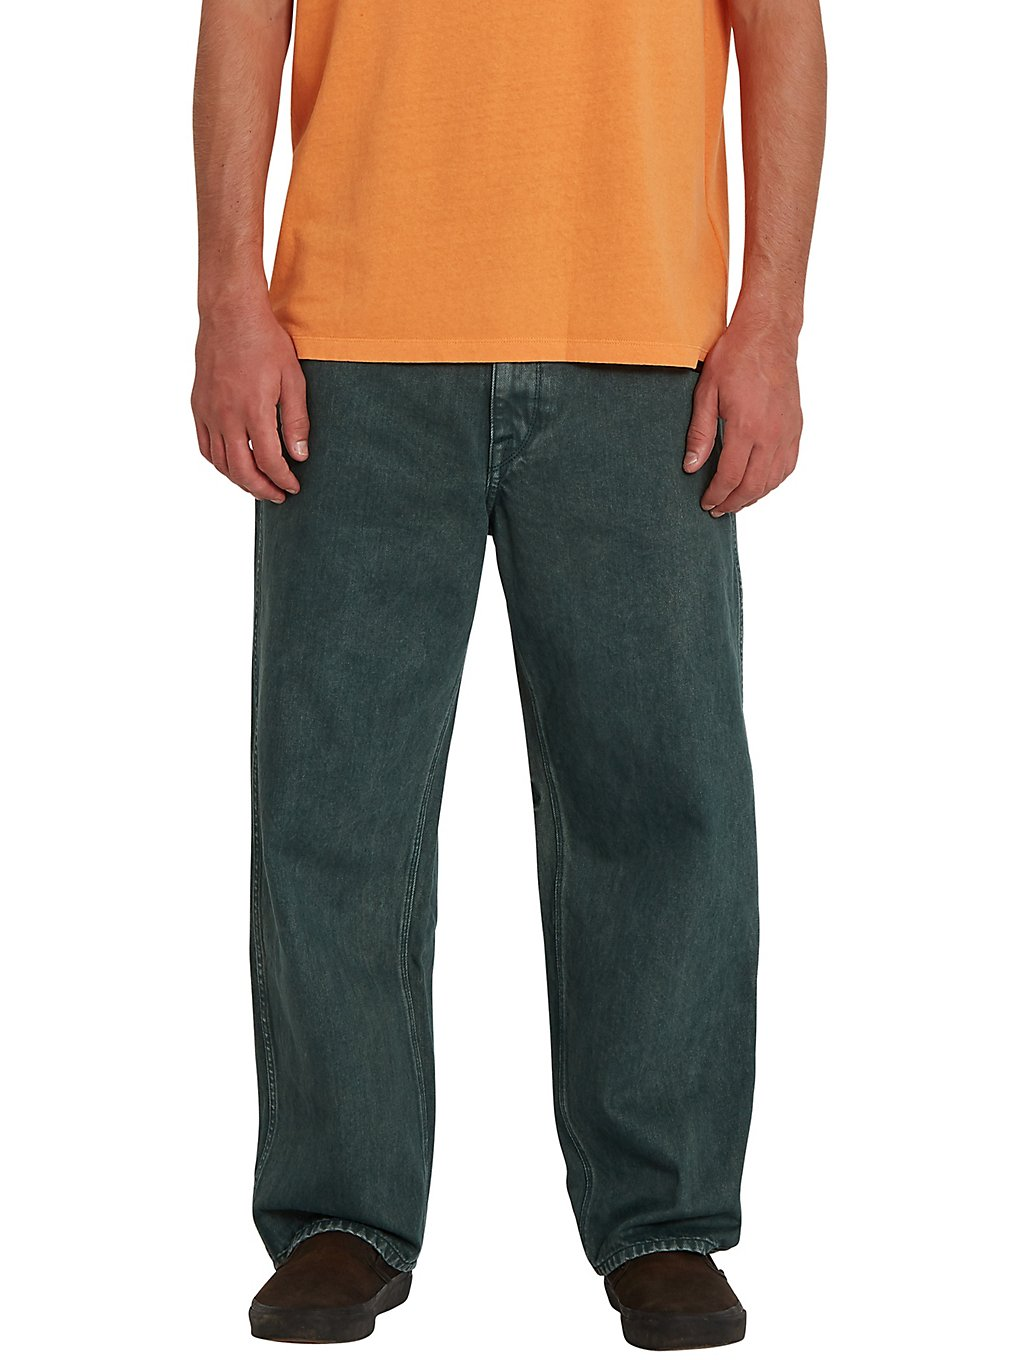 volcom lurking about jeans evergreen